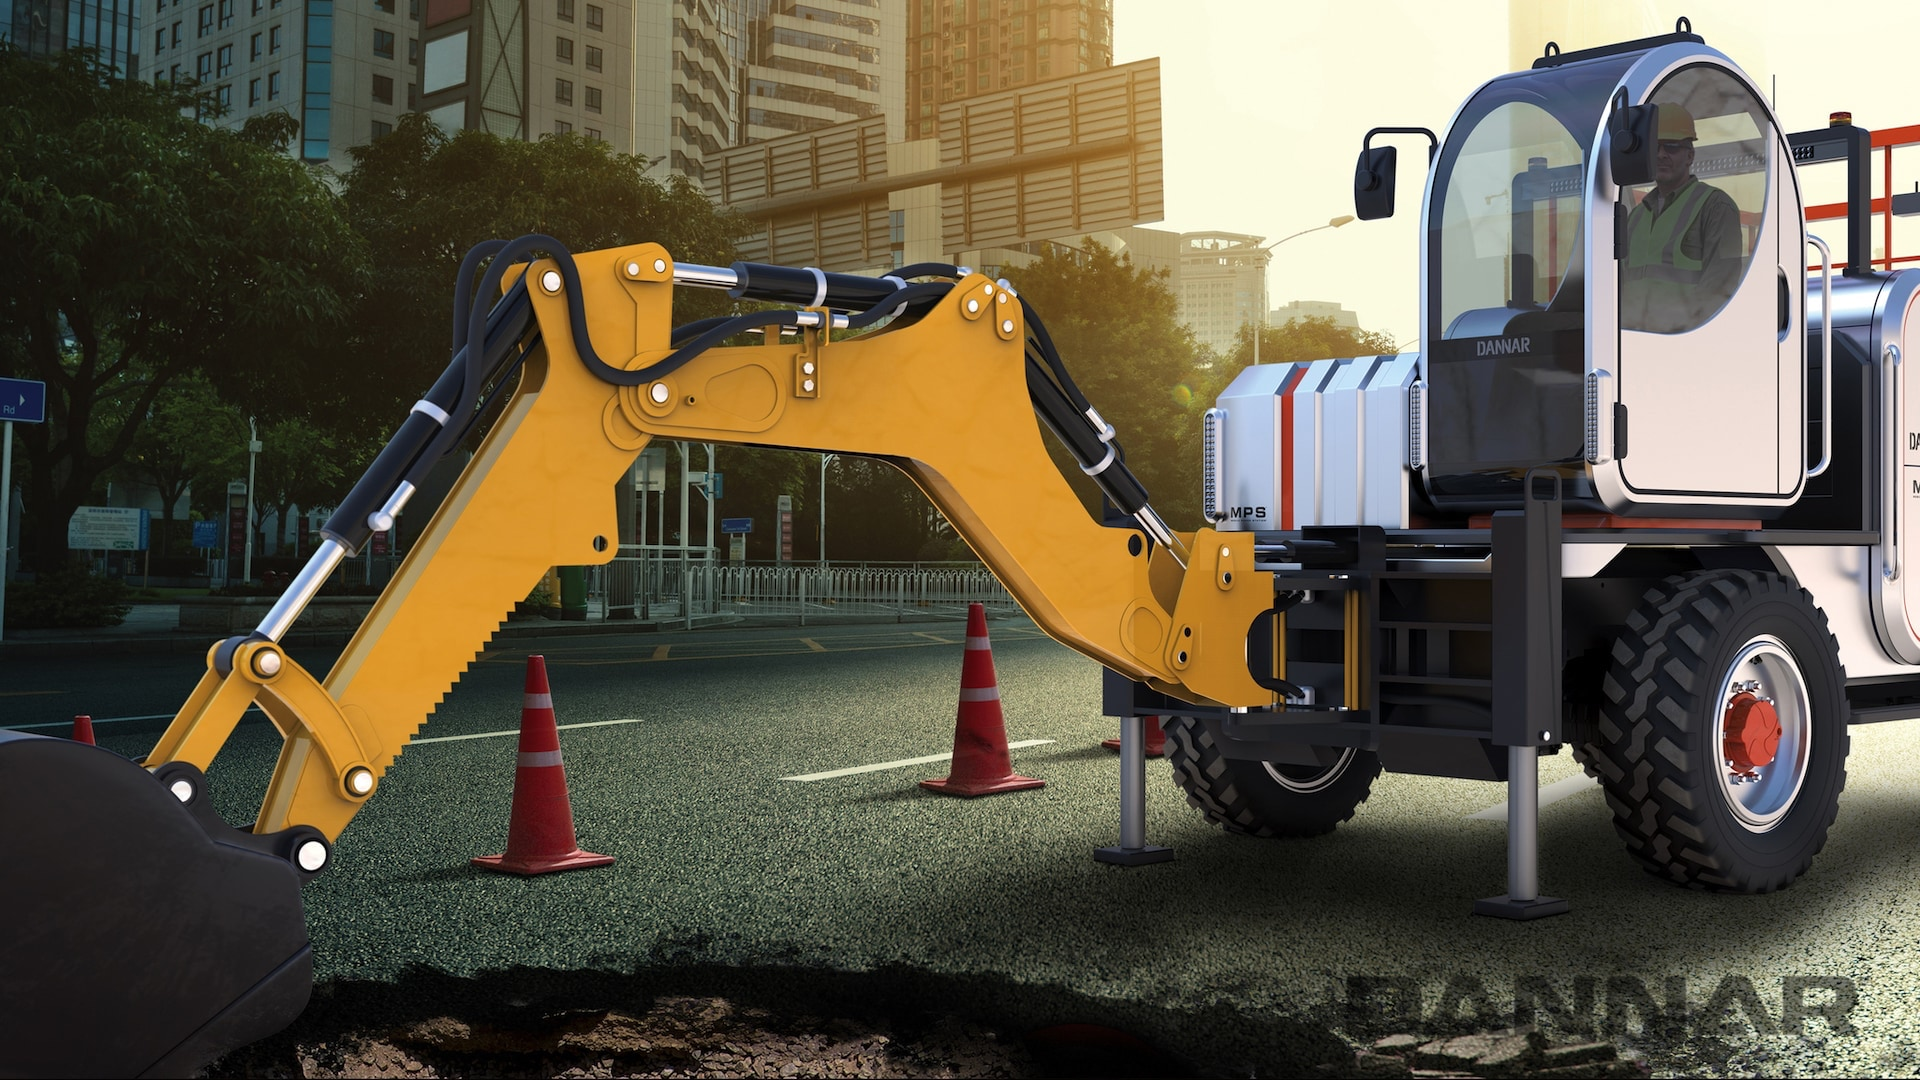 DANNAR 400 MPS with front loader repairing road in the city